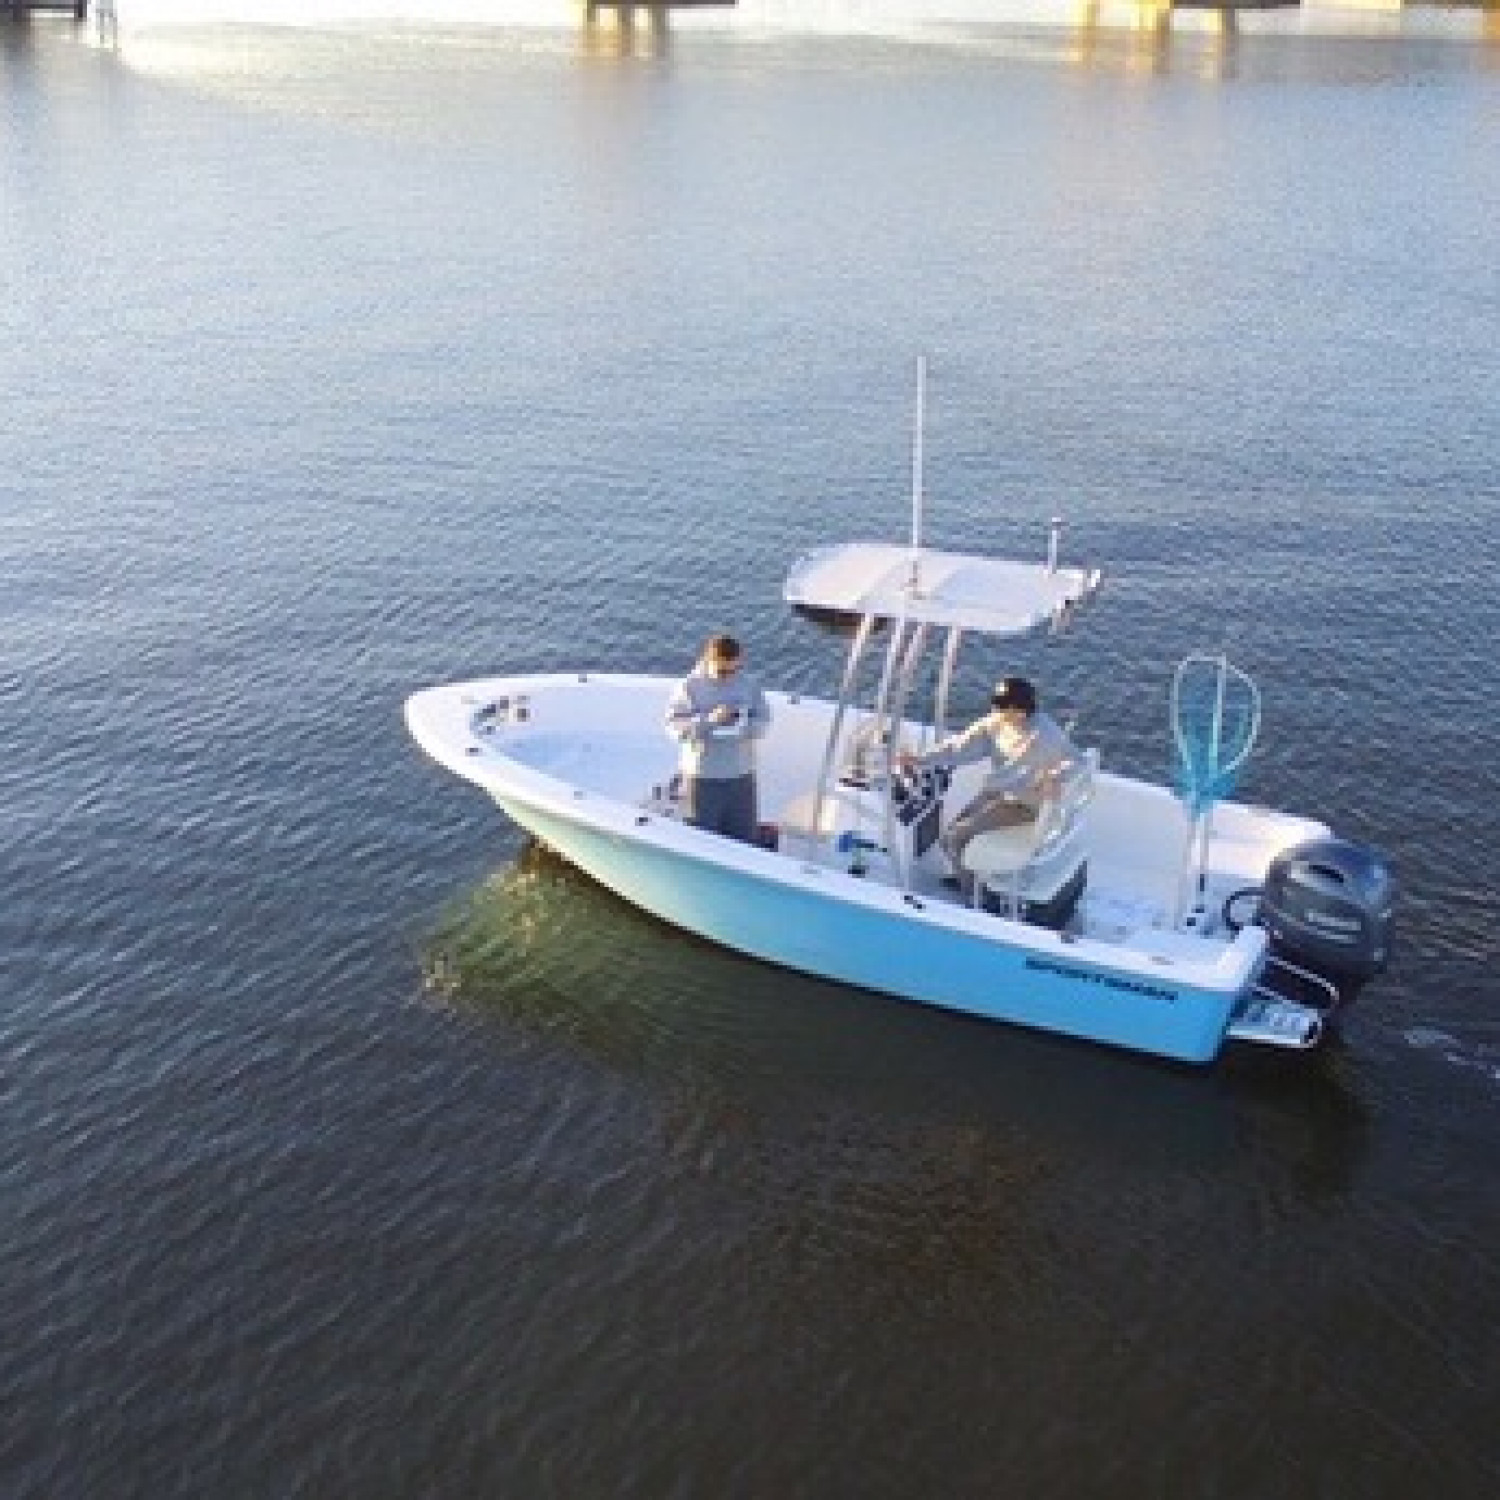 Title: Drone shit island reef 19 - On board their Sportsman Island Reef 19 Center Console - Location: Manasquan nj. Participating in the Photo Contest #SportsmanMay2018